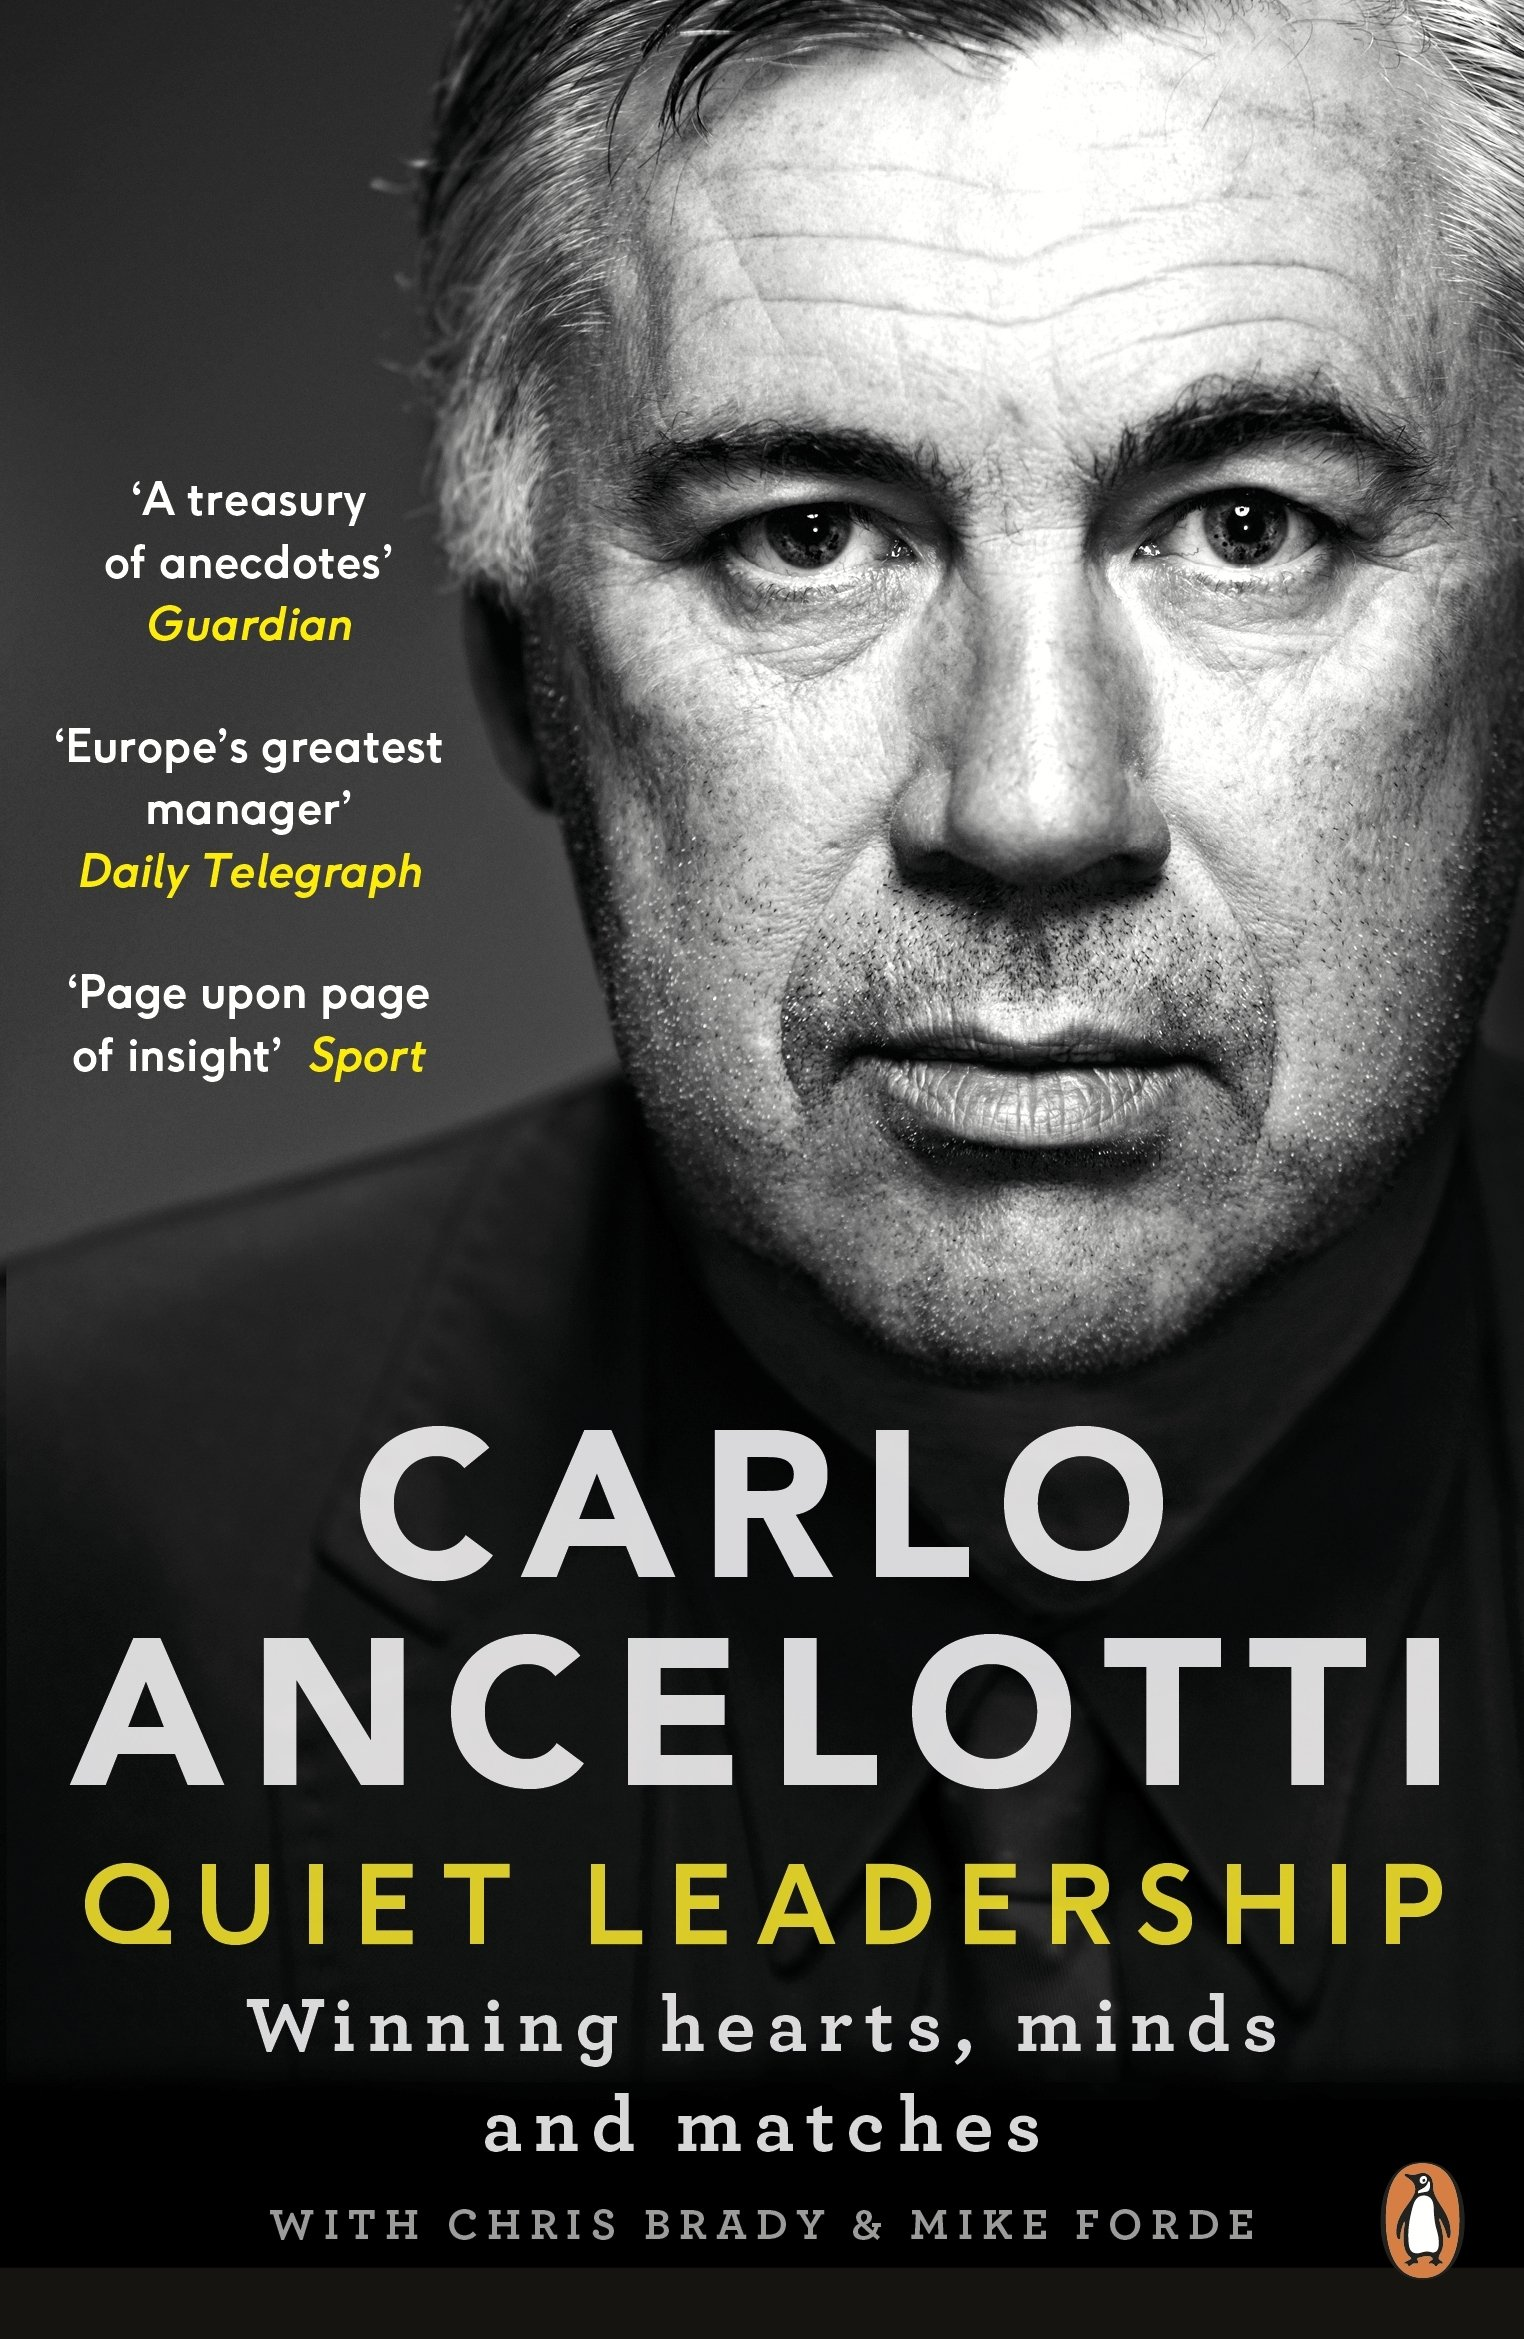 Carlo Ancelotti: Quiet Leadership: Winning Hearts, Minds and Matches Paperback – August 22, 2017 Penguin UK 0241244943 Management Business & Economics